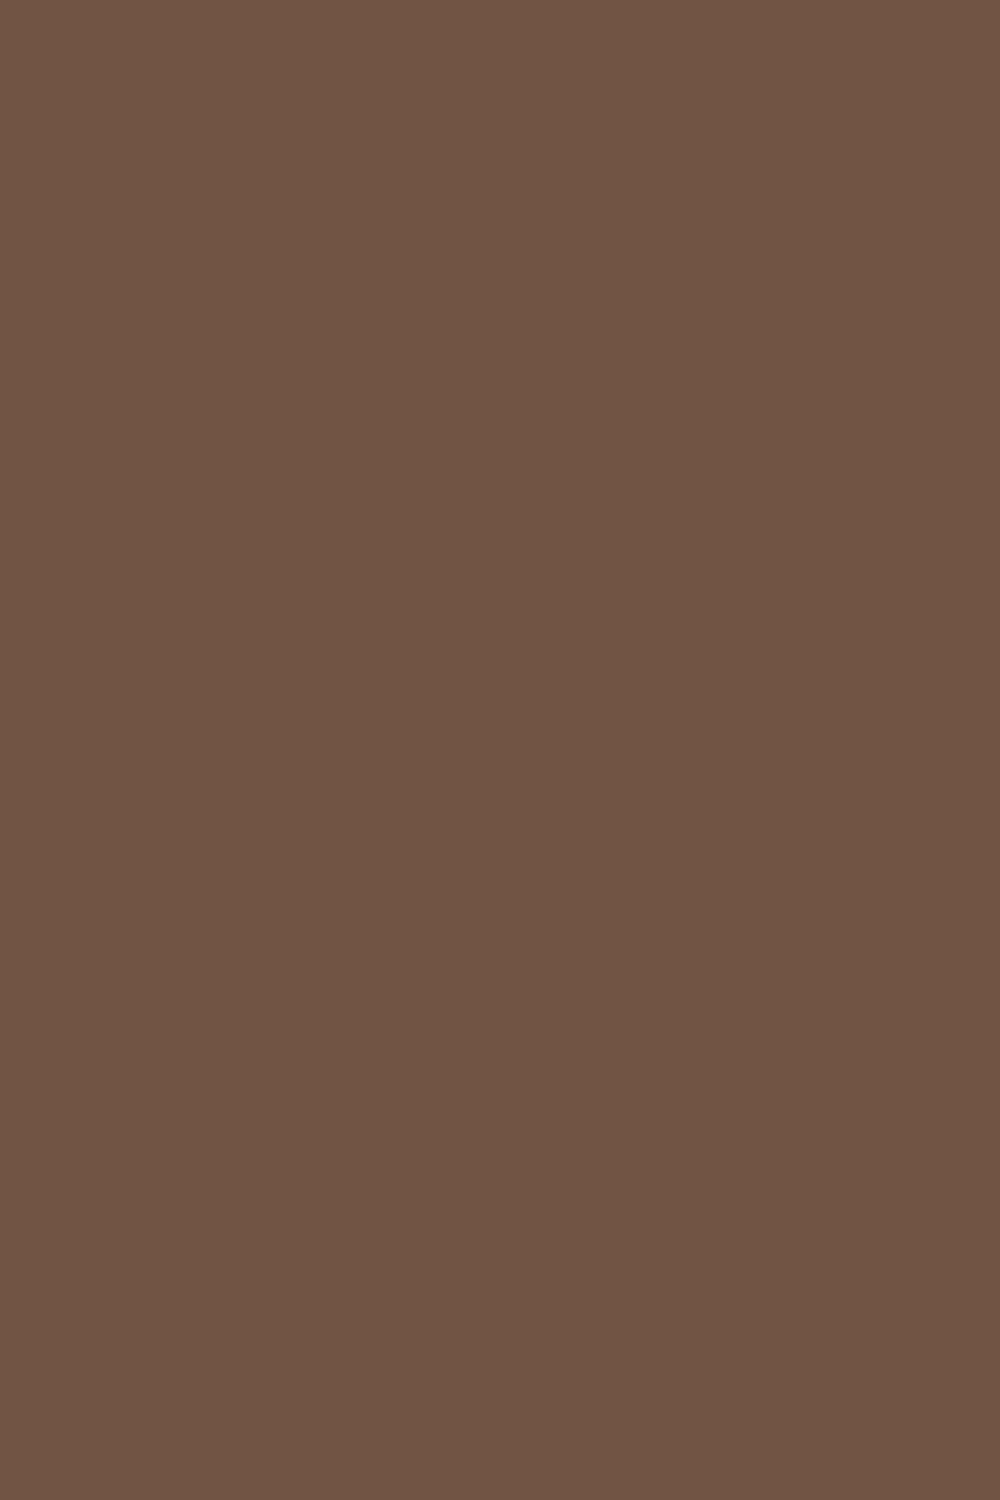 Brown Paints Interiors By Color